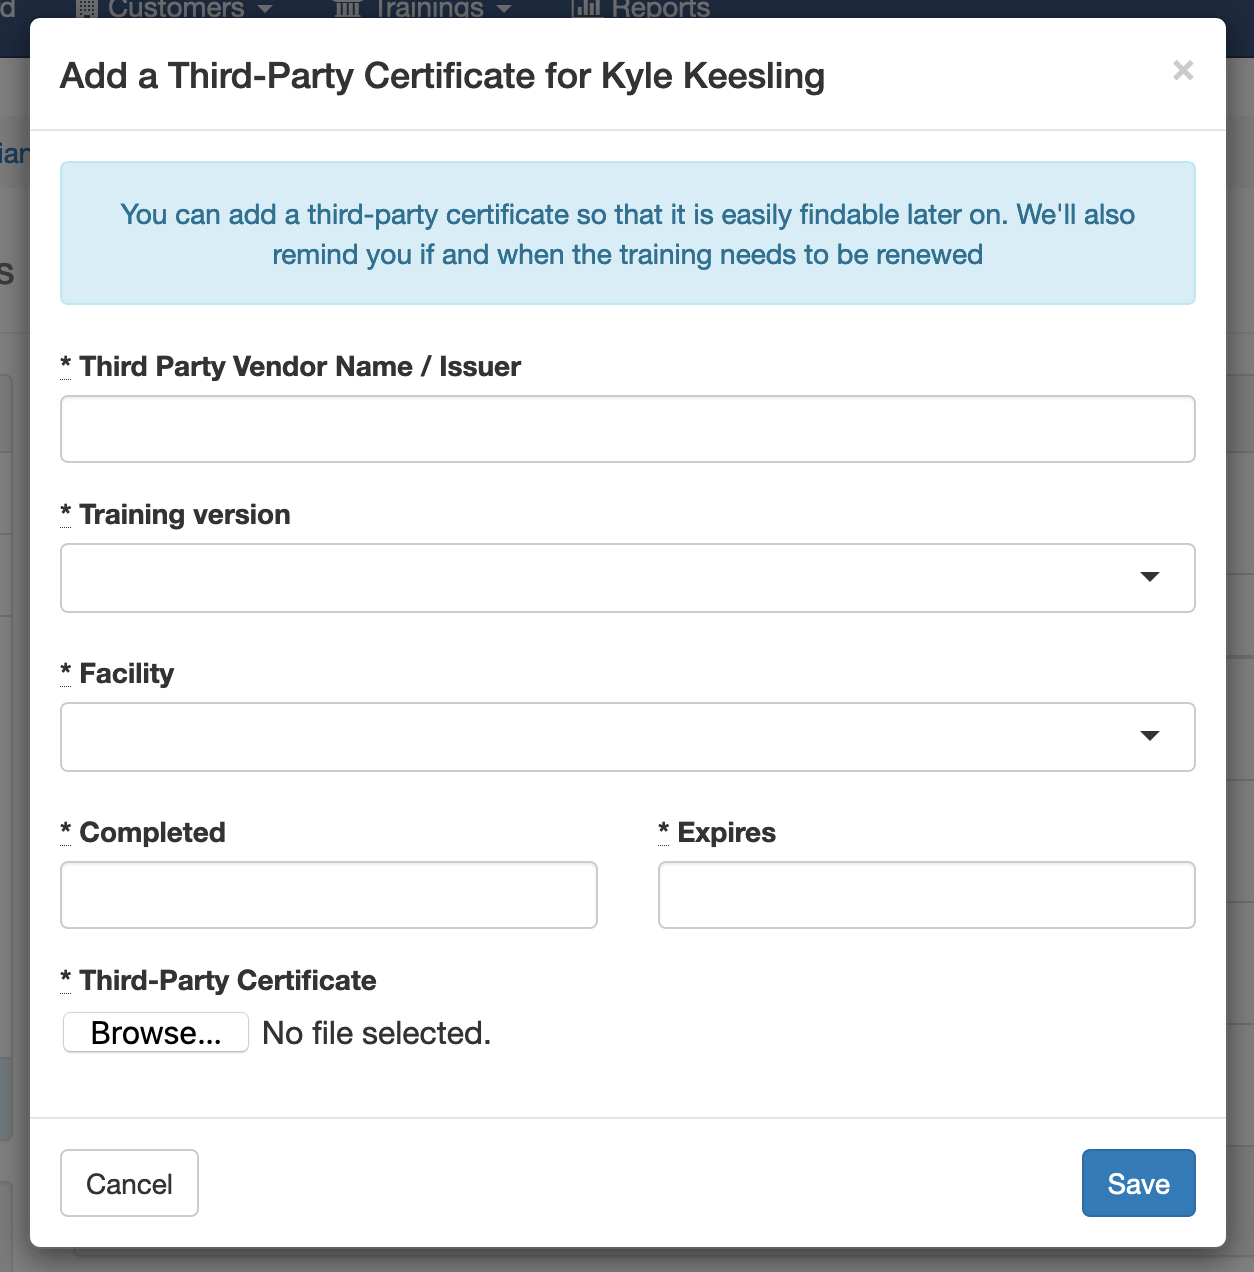 Third-Party Certificate Form